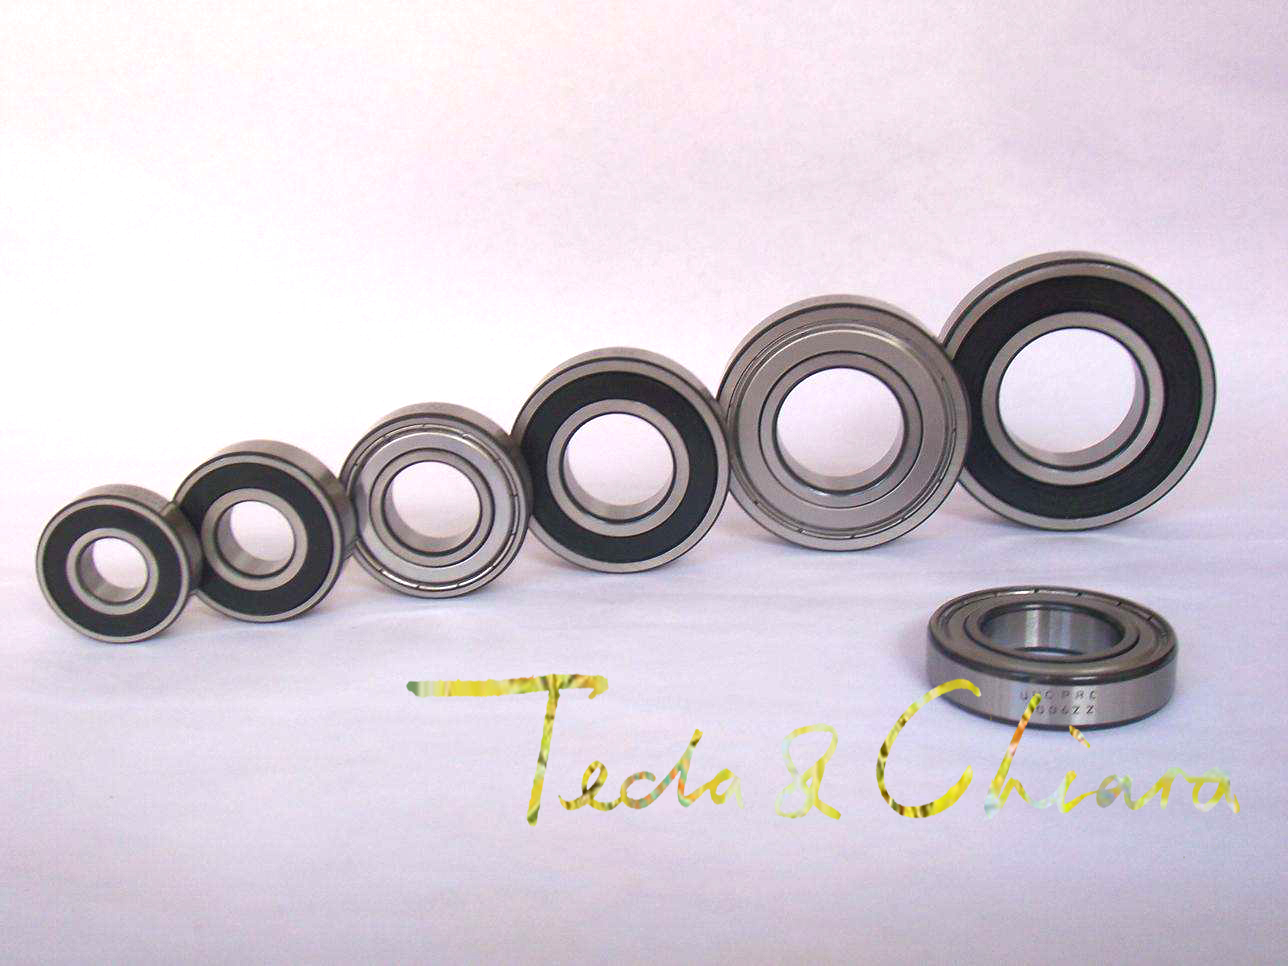 635 635ZZ 635RS 635-2Z 635Z 635-2RS ZZ RS RZ 2RZ Deep Groove Ball Bearings 5 X 19 X 6mm